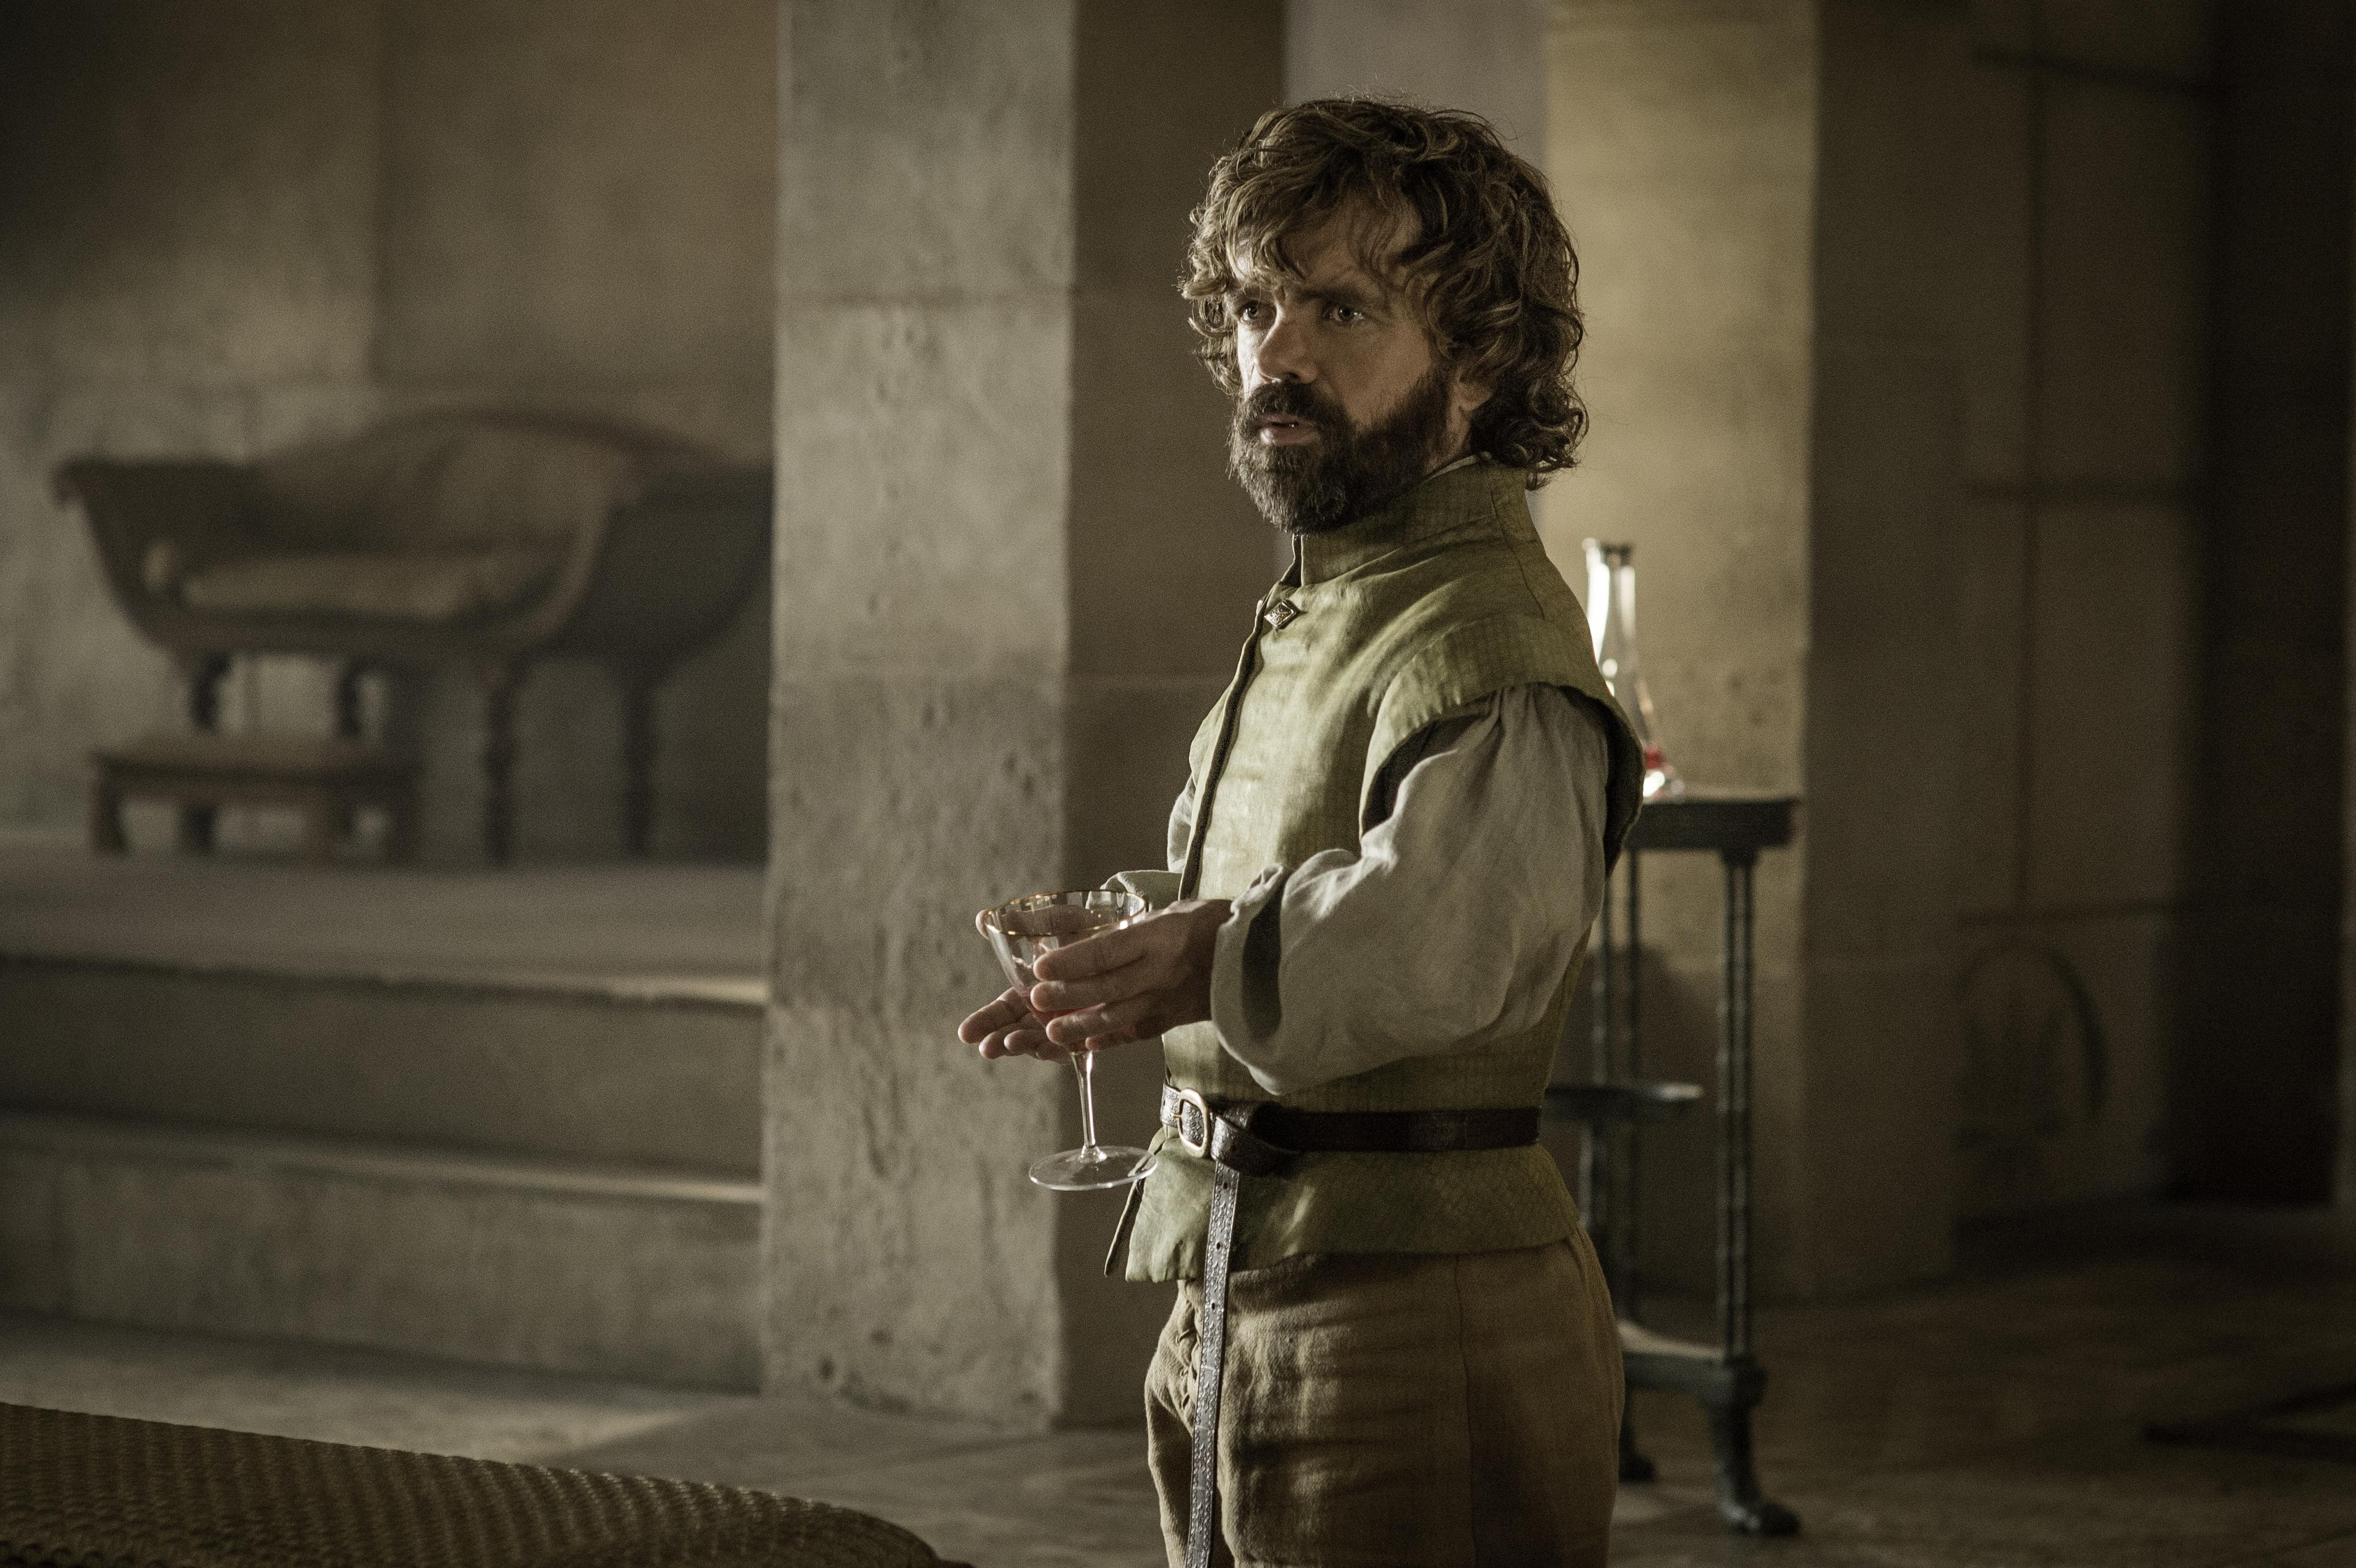 Confirmed: Tyrion Lannister betrays the Lannisters